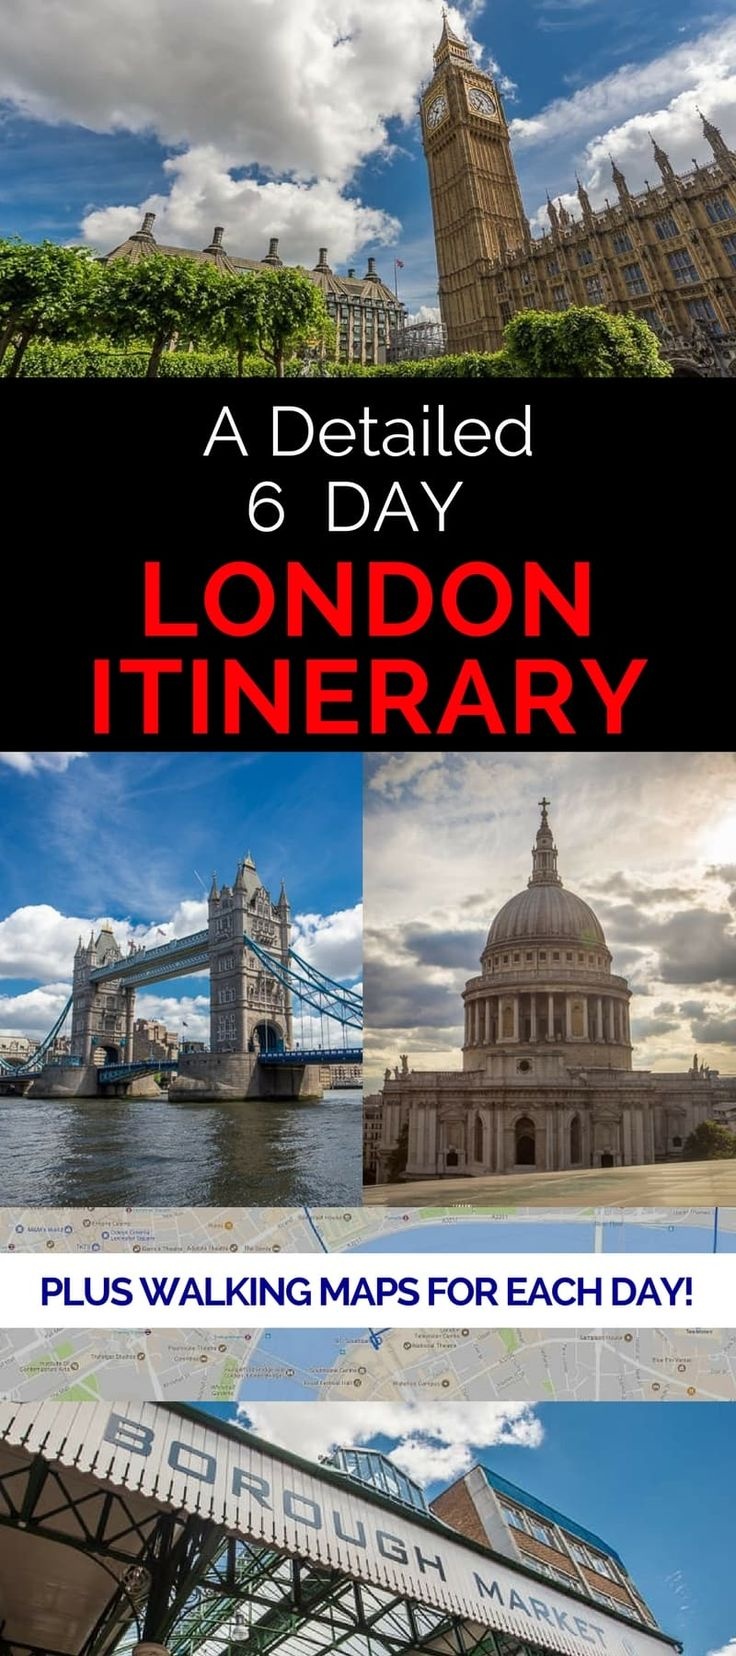 Map Uk Attractions%0A A detailed   day London itinerary that provides a detailed suggested  itinerary for each day